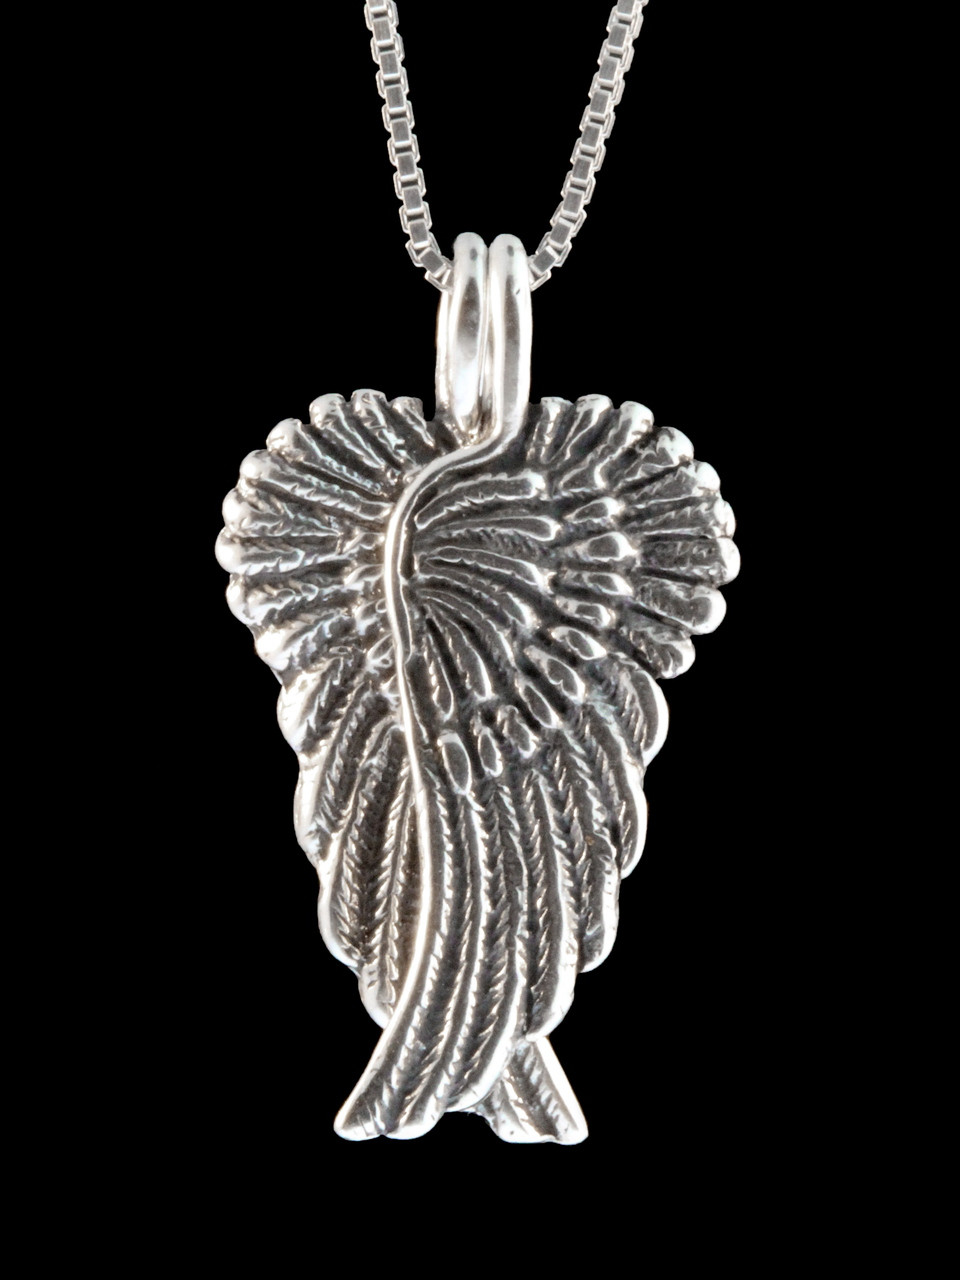 jewelry angel gunmetal pendant il bronze on by fullxfull wing lostapostle lost pinktiger chain shop apostle